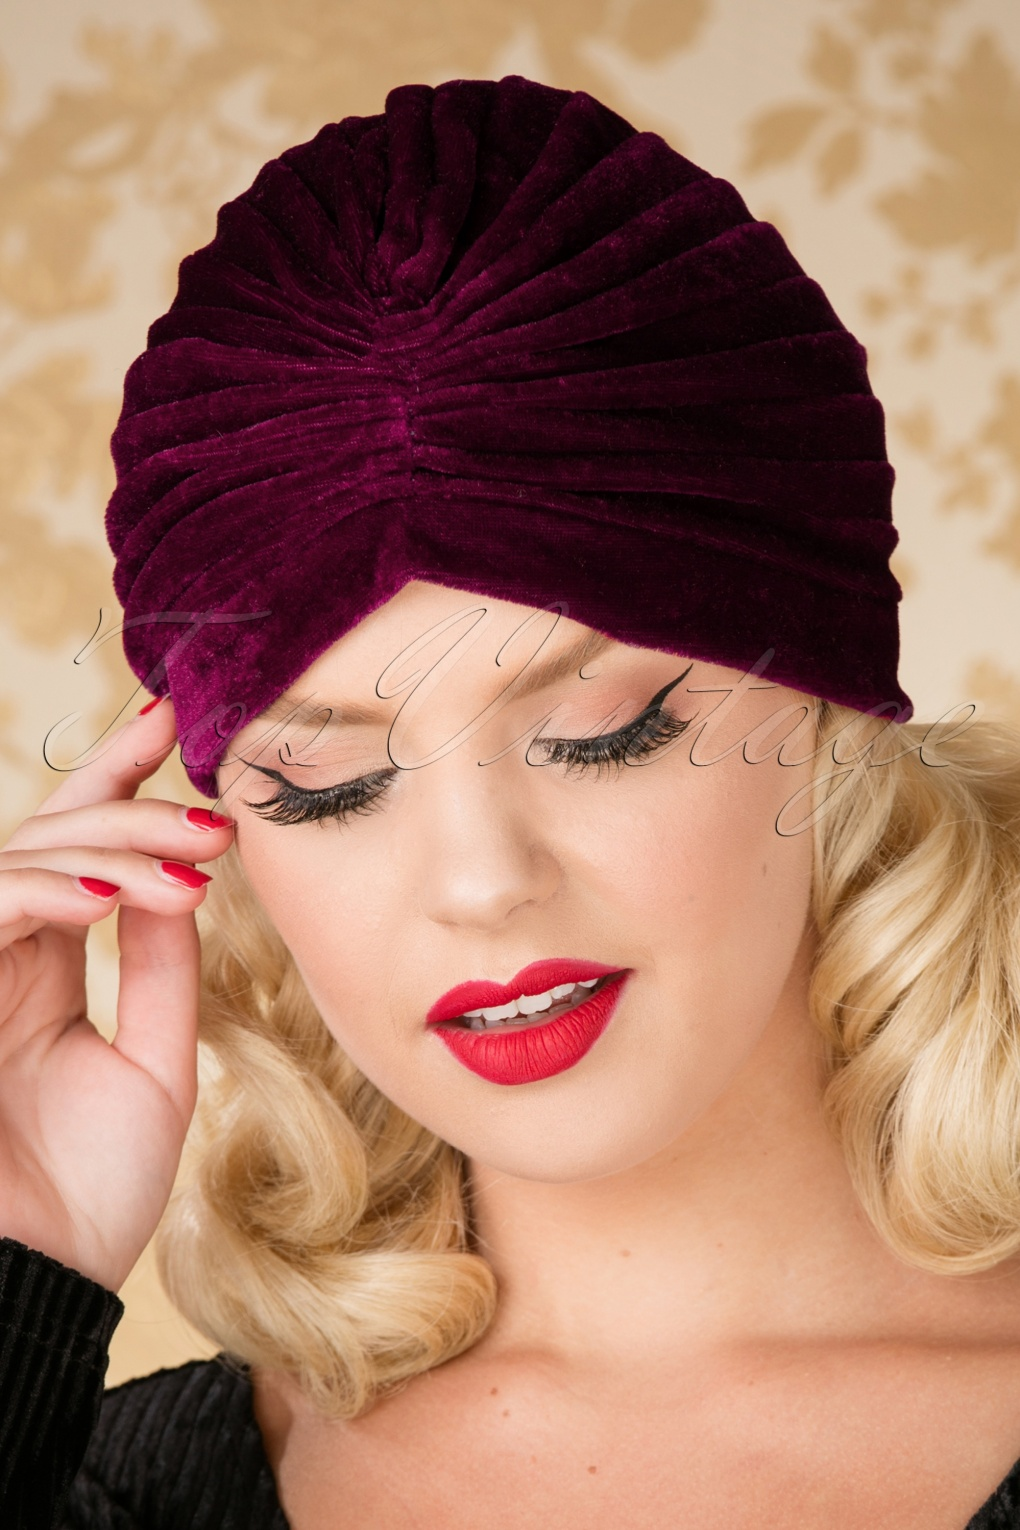 Vintage Hair Accessories: Combs, Headbands, Flowers, Scarf, Wigs 20s Warlock Velvet Turban Hat in Burgundy £5.23 AT vintagedancer.com